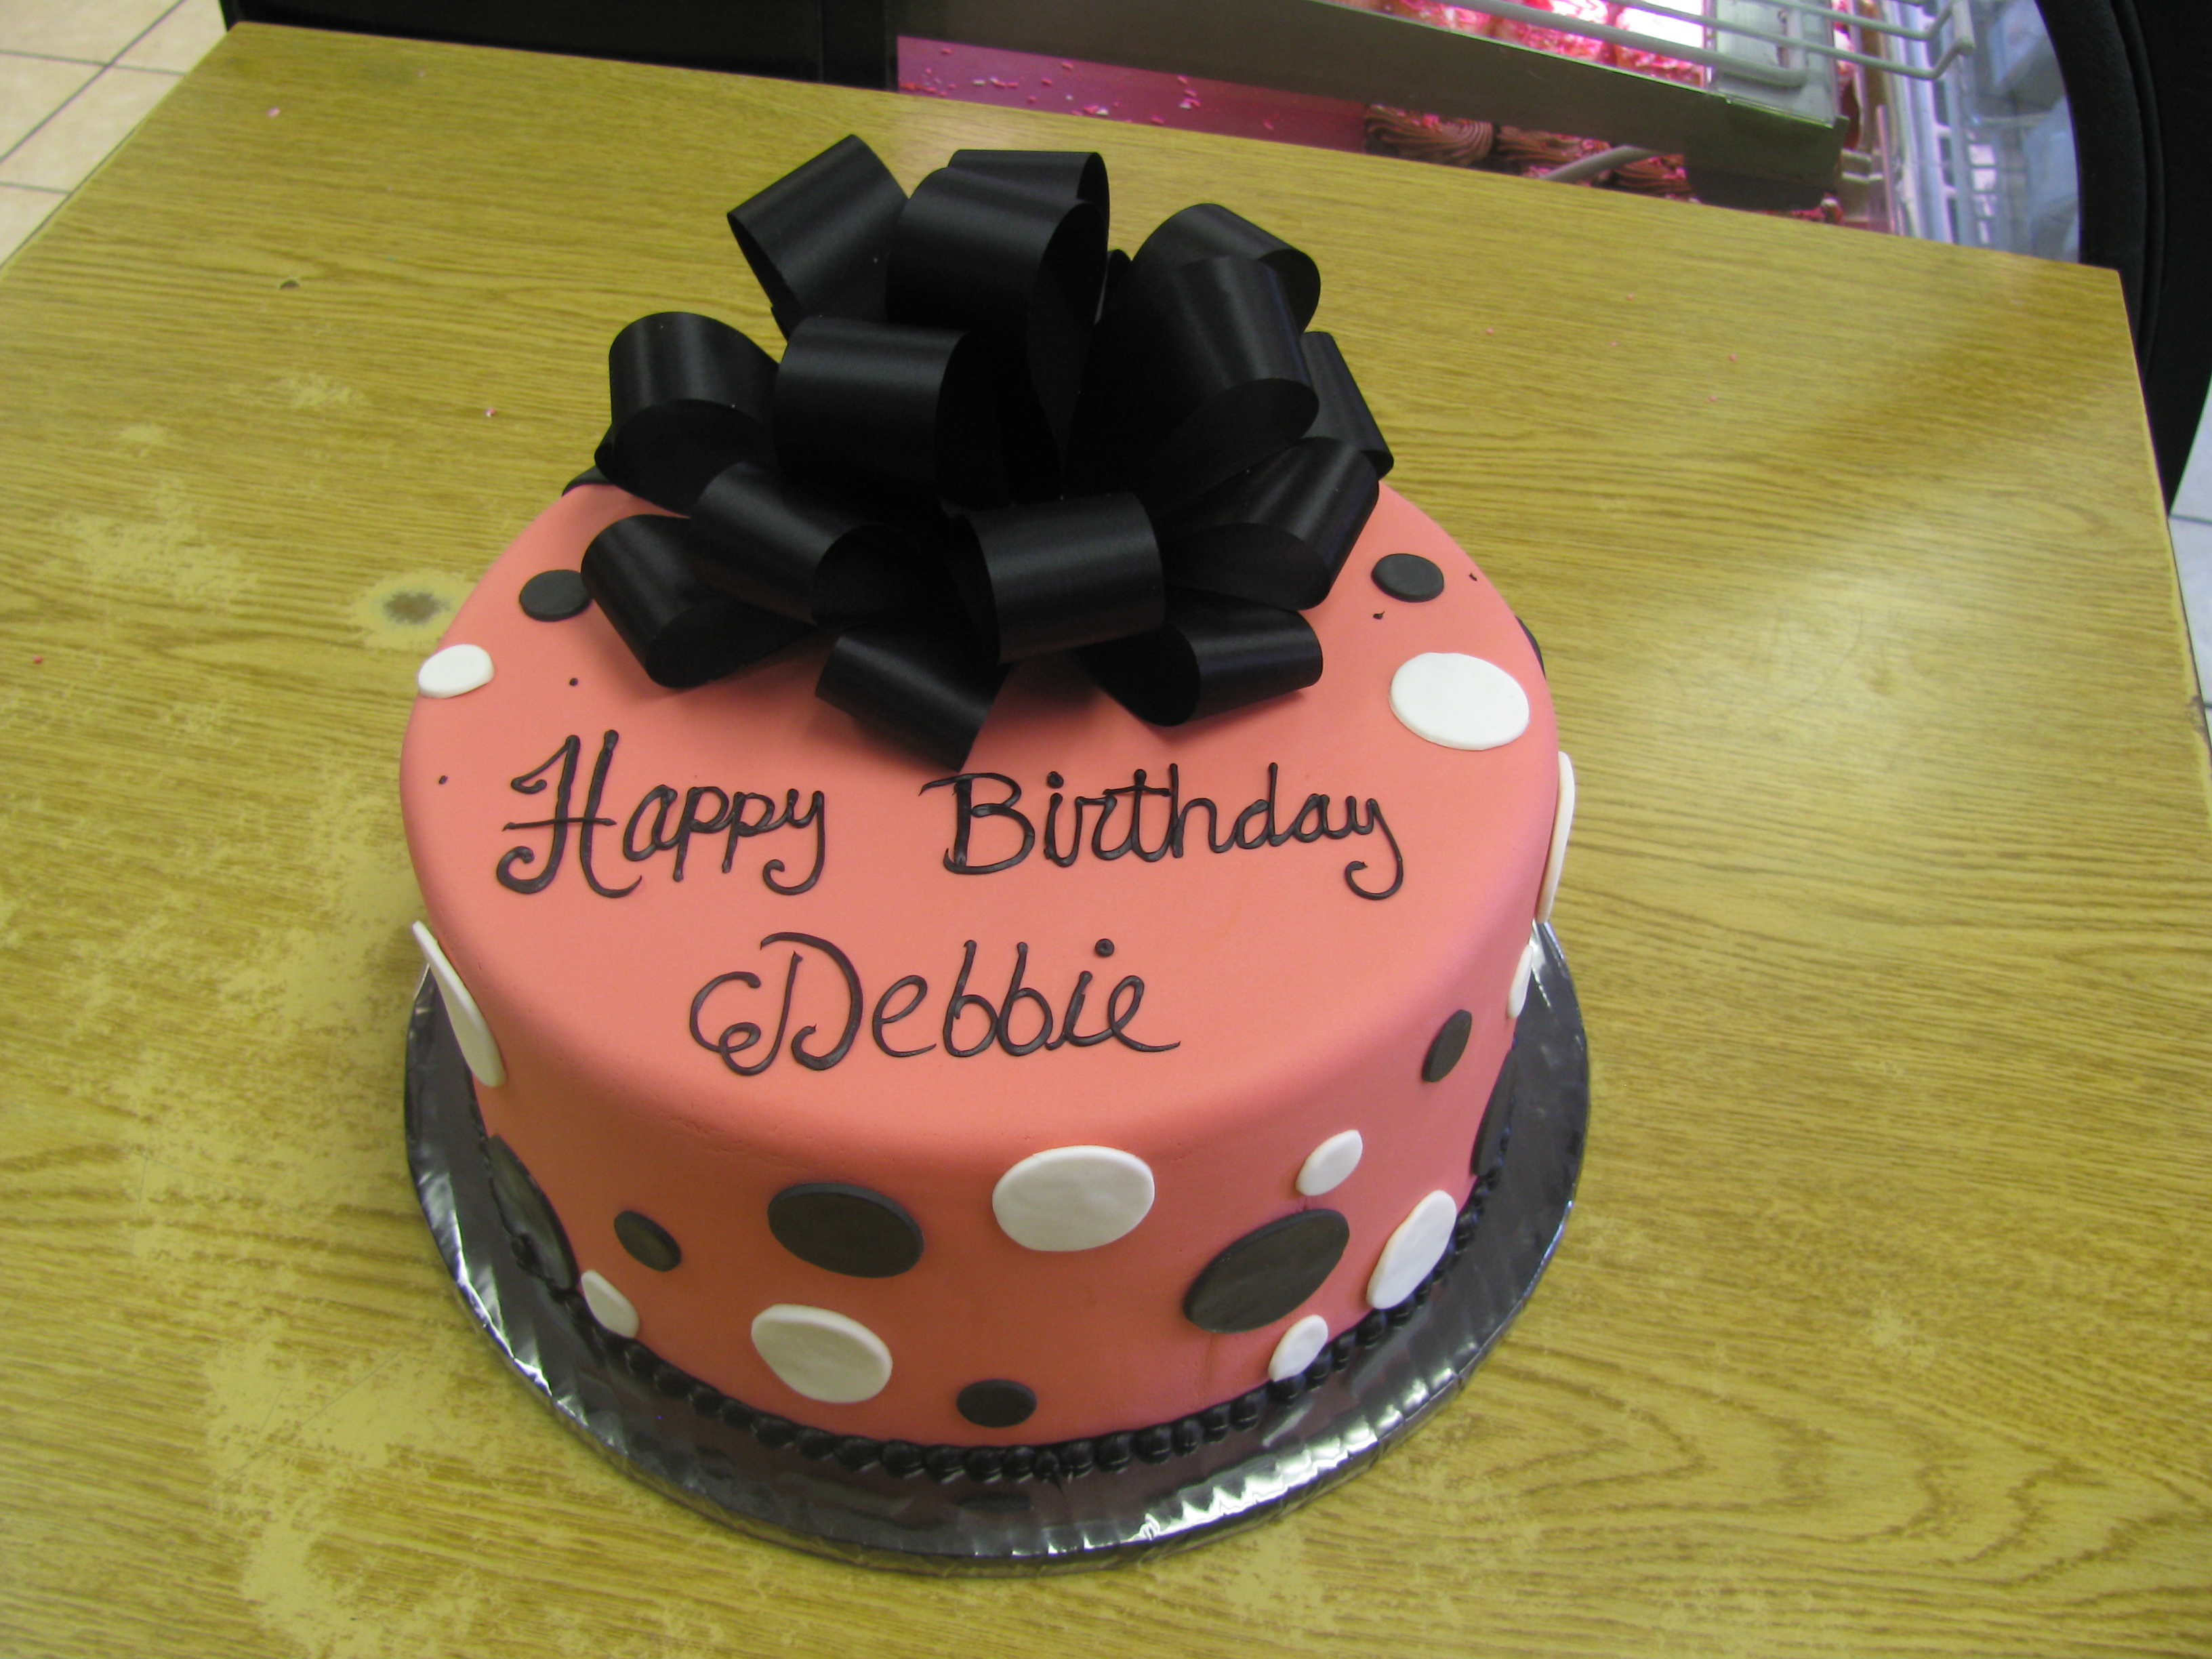 Happy Birthday Debbie Cake Happy Birthday Debbie Cake Brithday Cake